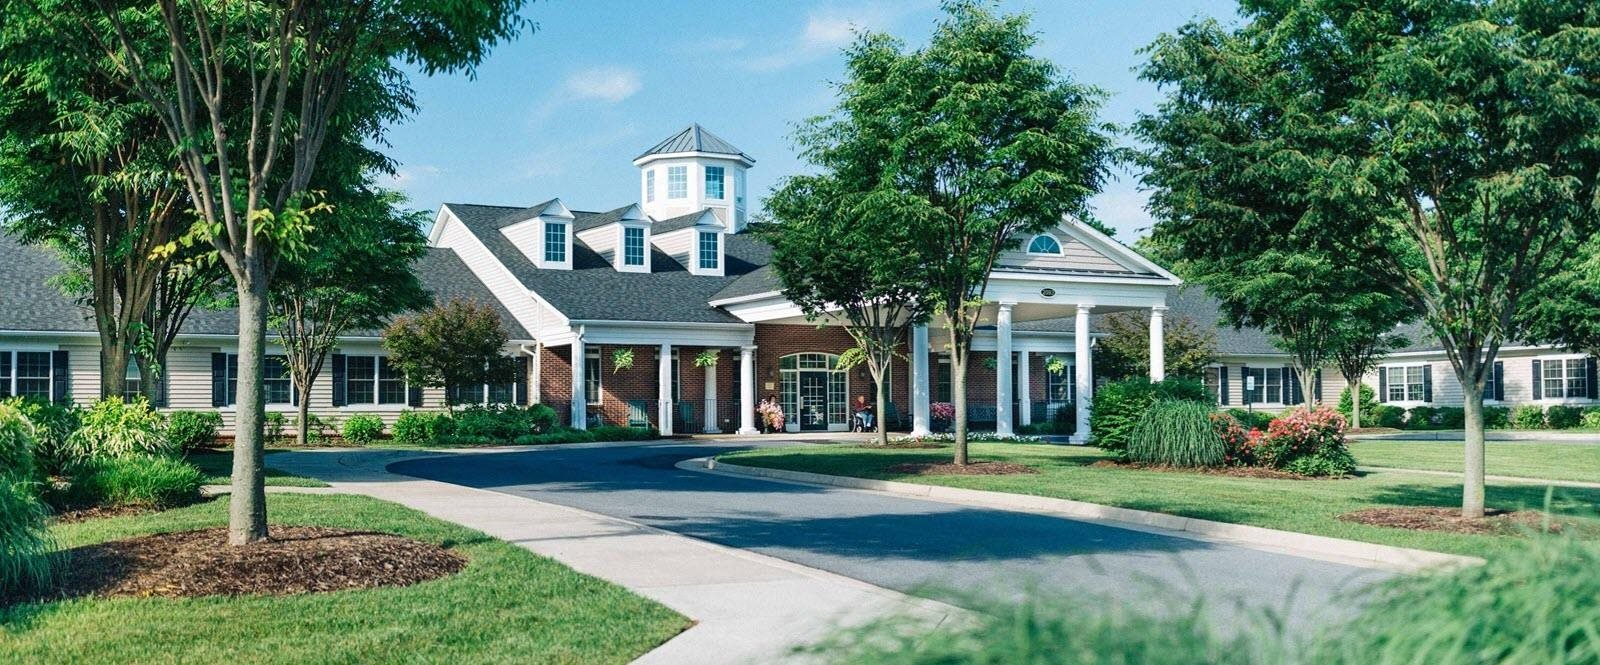 Elegant Exterior View Of Property at Spring Arbor of Winchester, Winchester, VA, 22603